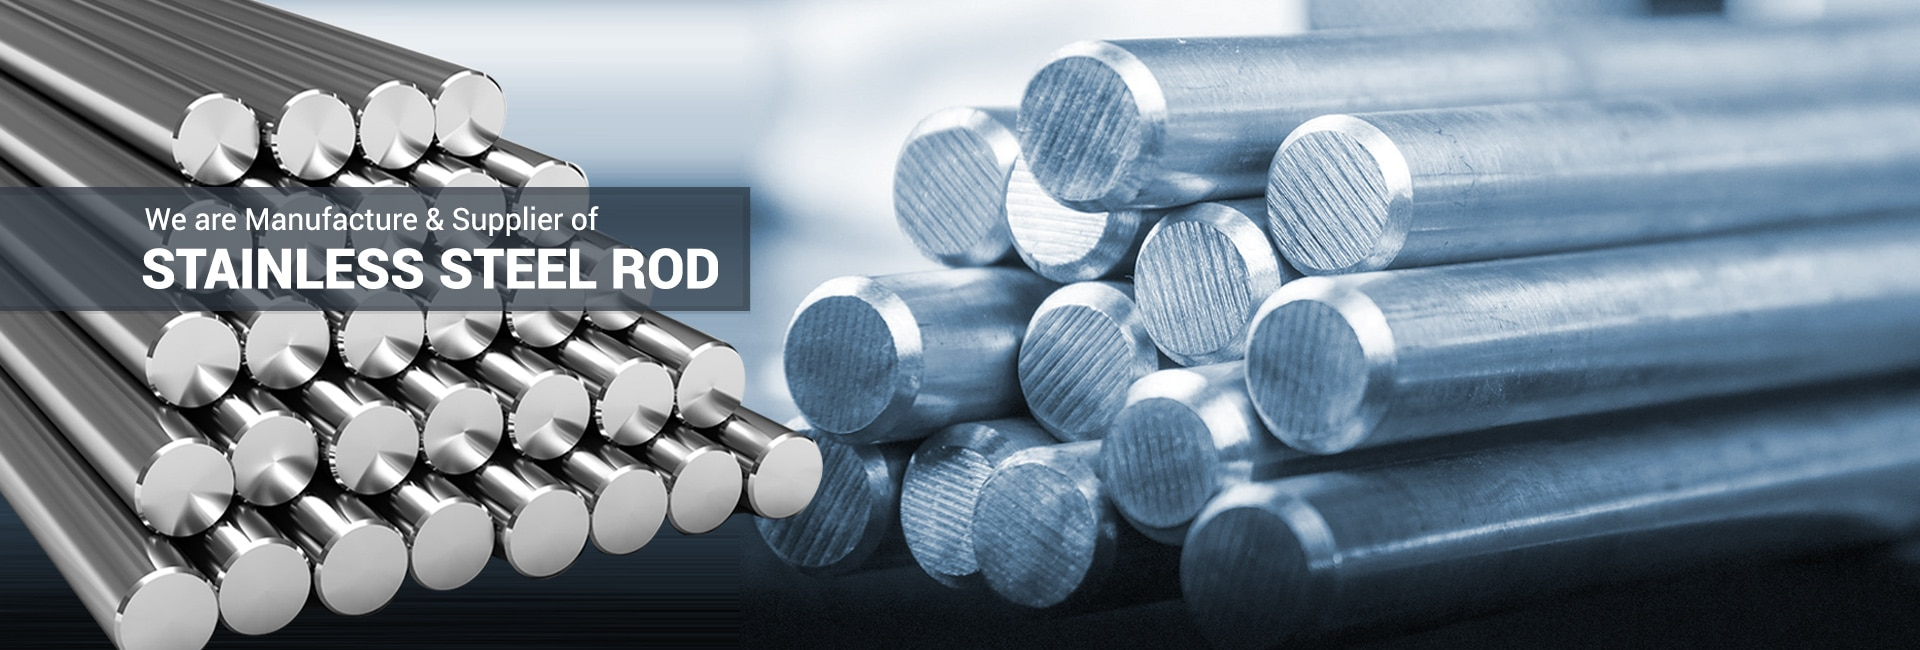 Stainless Steel Rod Manufacturer in Ahmedabad